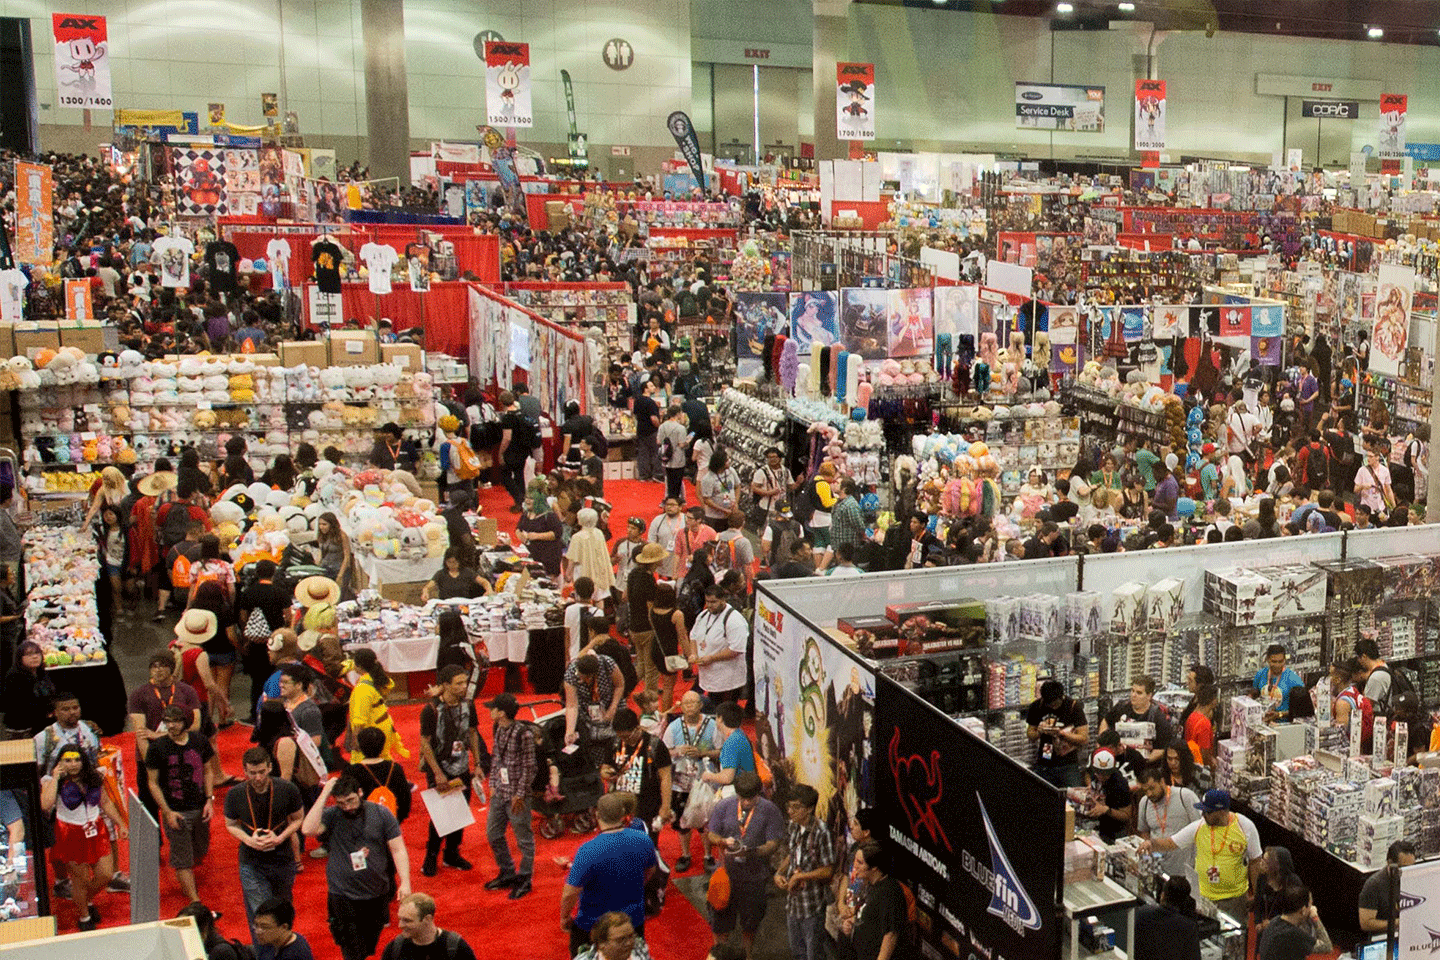 AX 2018 Exhibitor List Now Available